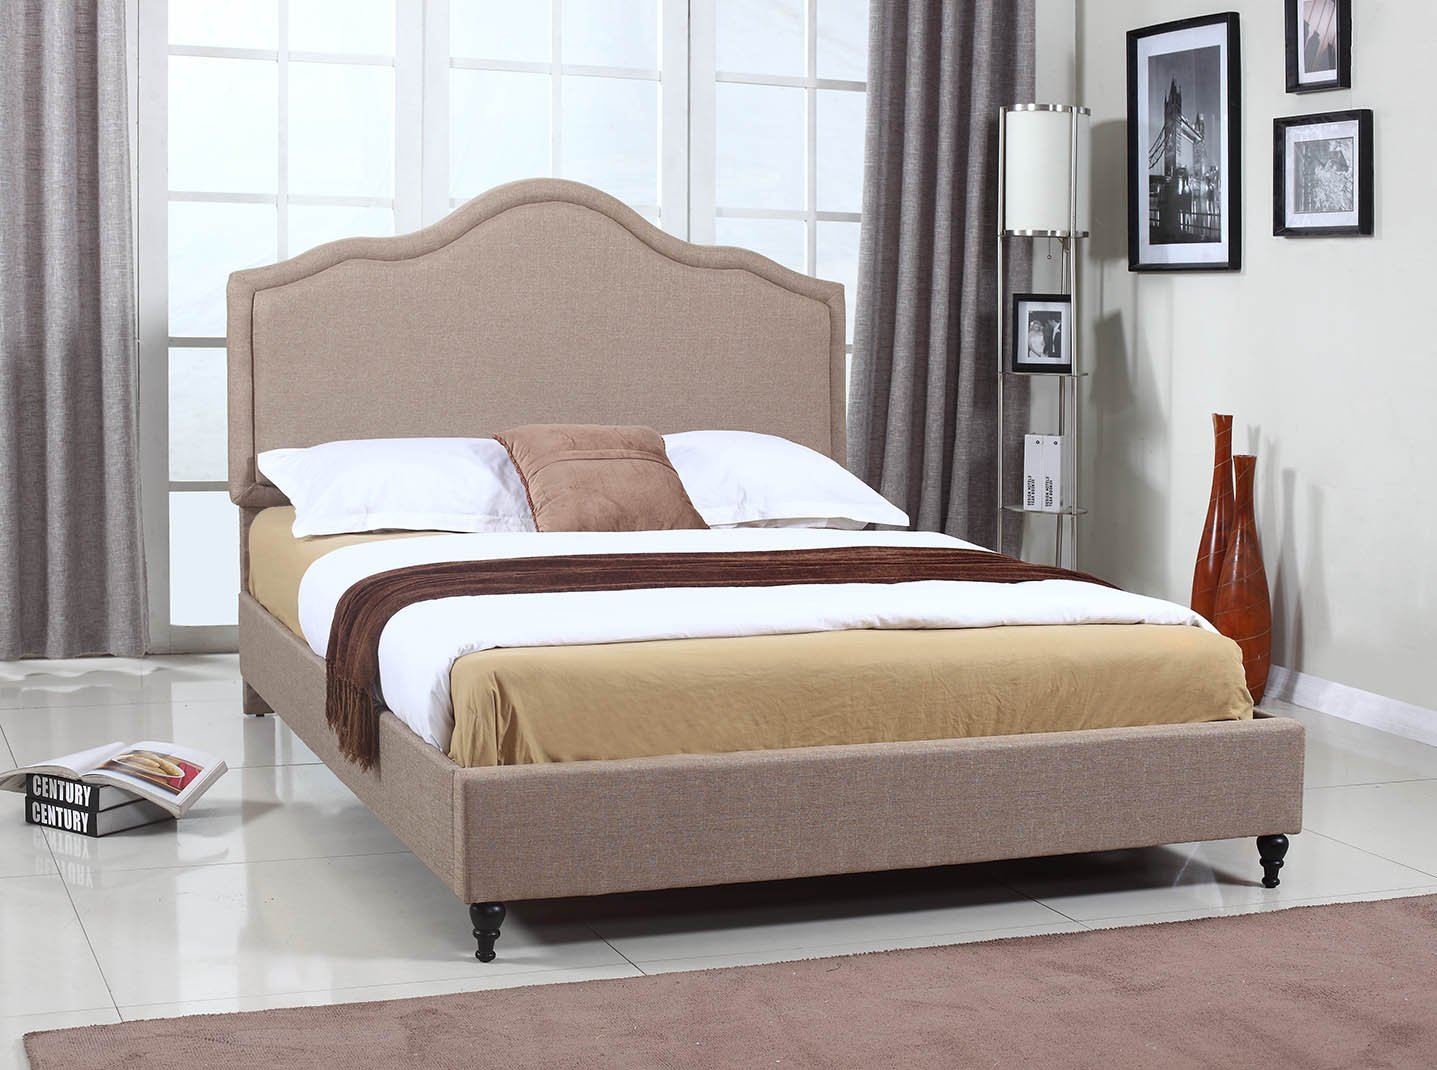 Home Life Cloth Light Brown Linen 51 Tall Headboard Platform Bed with Slats Full – Complete Bed 5 Year Warranty Included 009